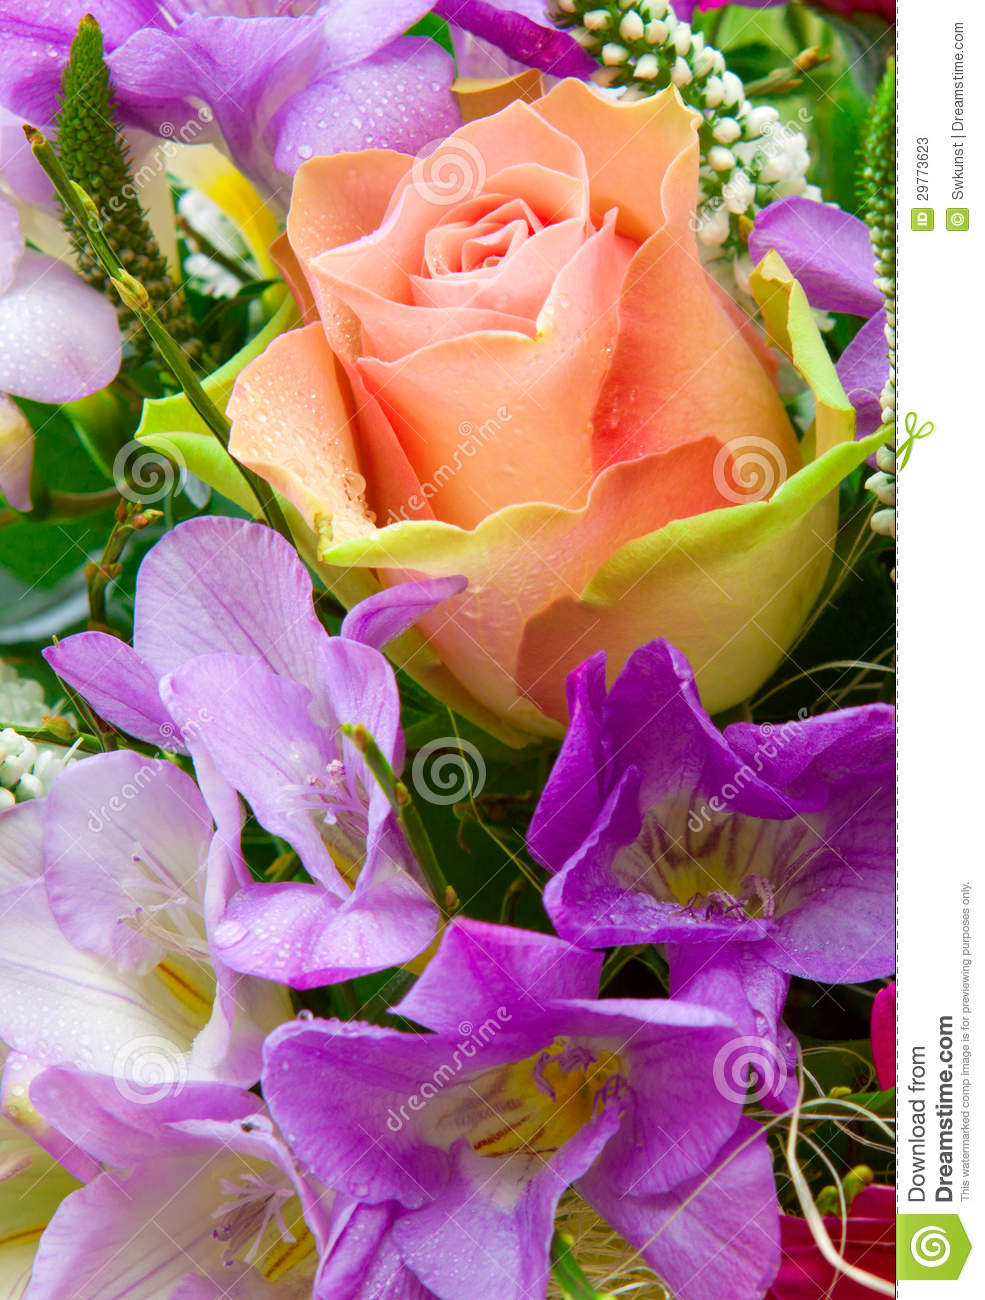 Colorful flower bouquet stock image image of leaves 29773623 colorful flower bouquet leaves rose izmirmasajfo Choice Image